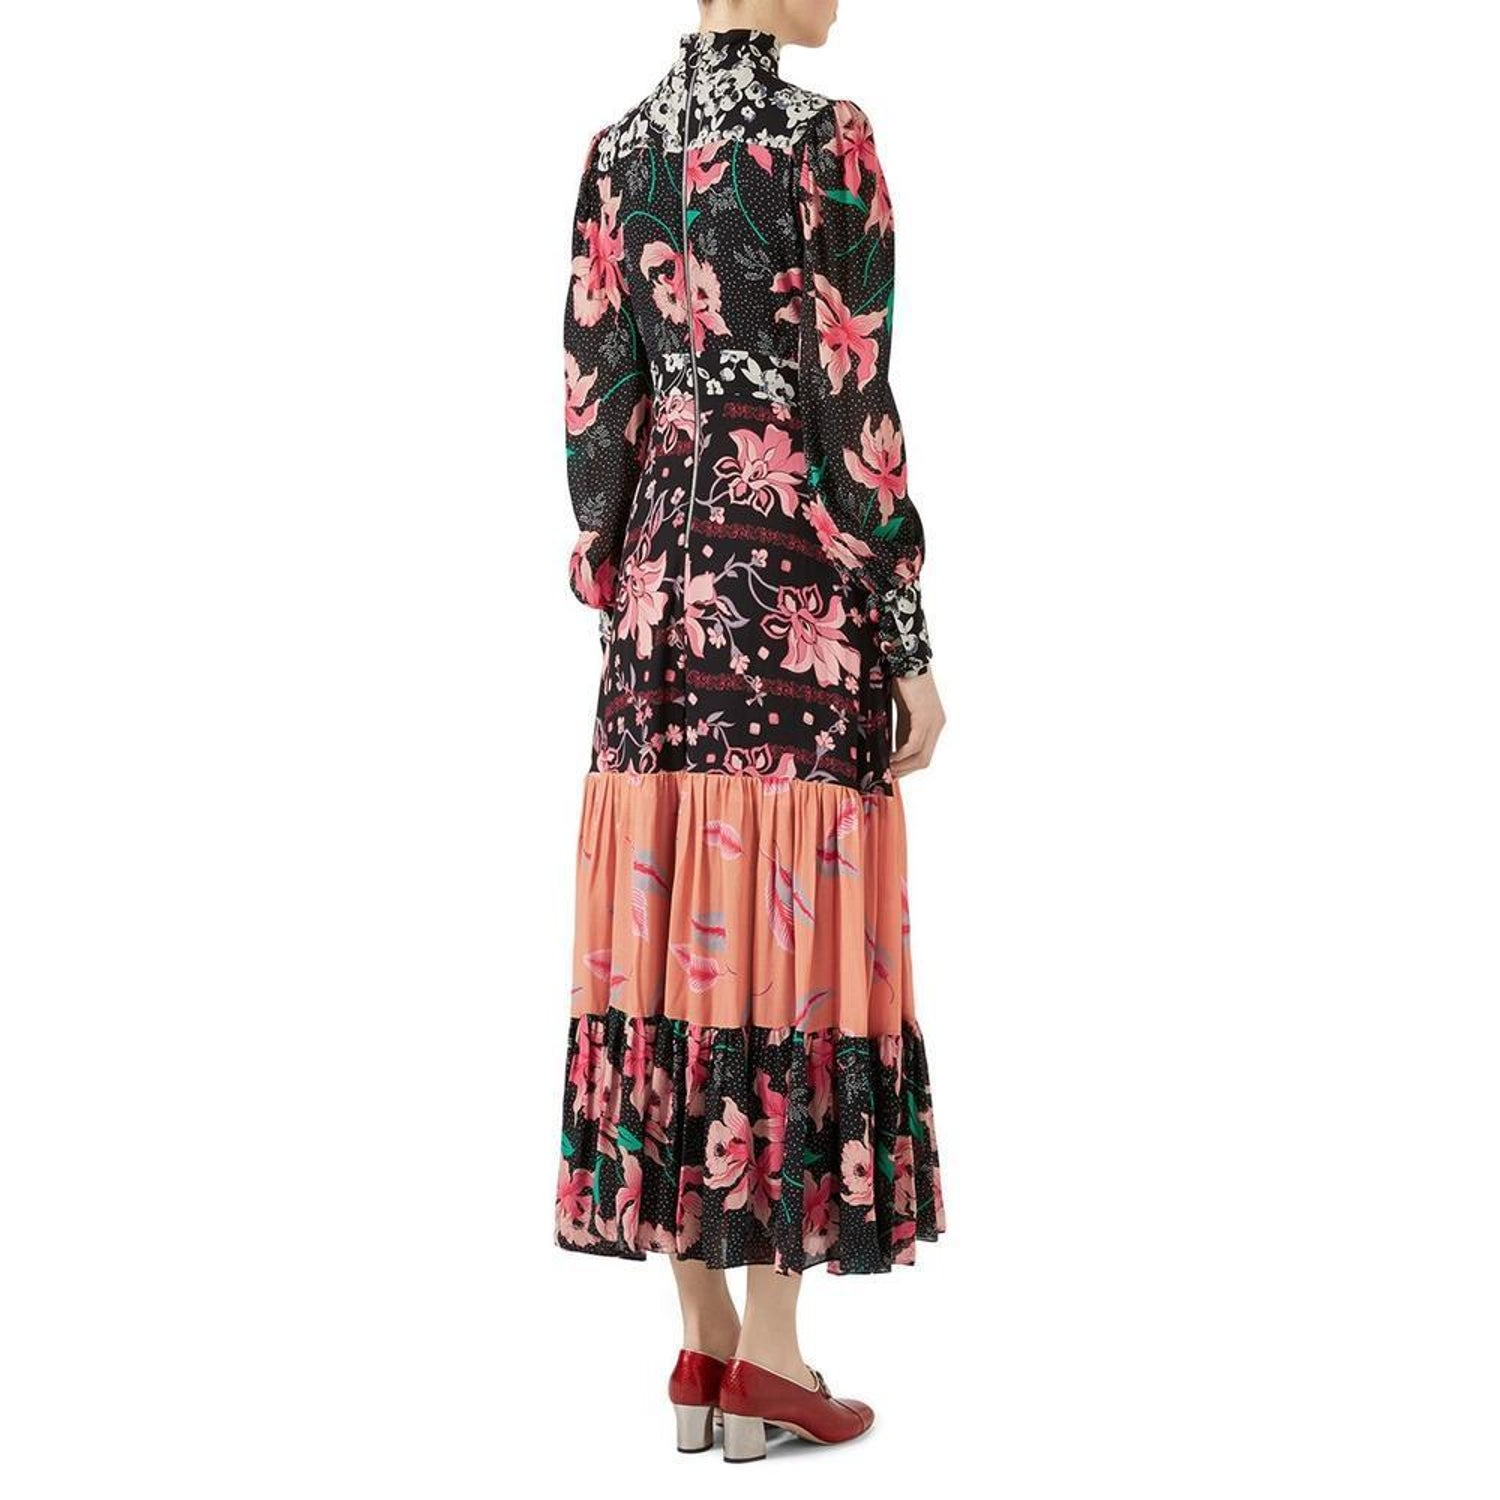 f076c0f40 GUCCI Floral Patchwork Stand Collar Crepe Dress IT44 US 8-10 For Sale at  1stdibs